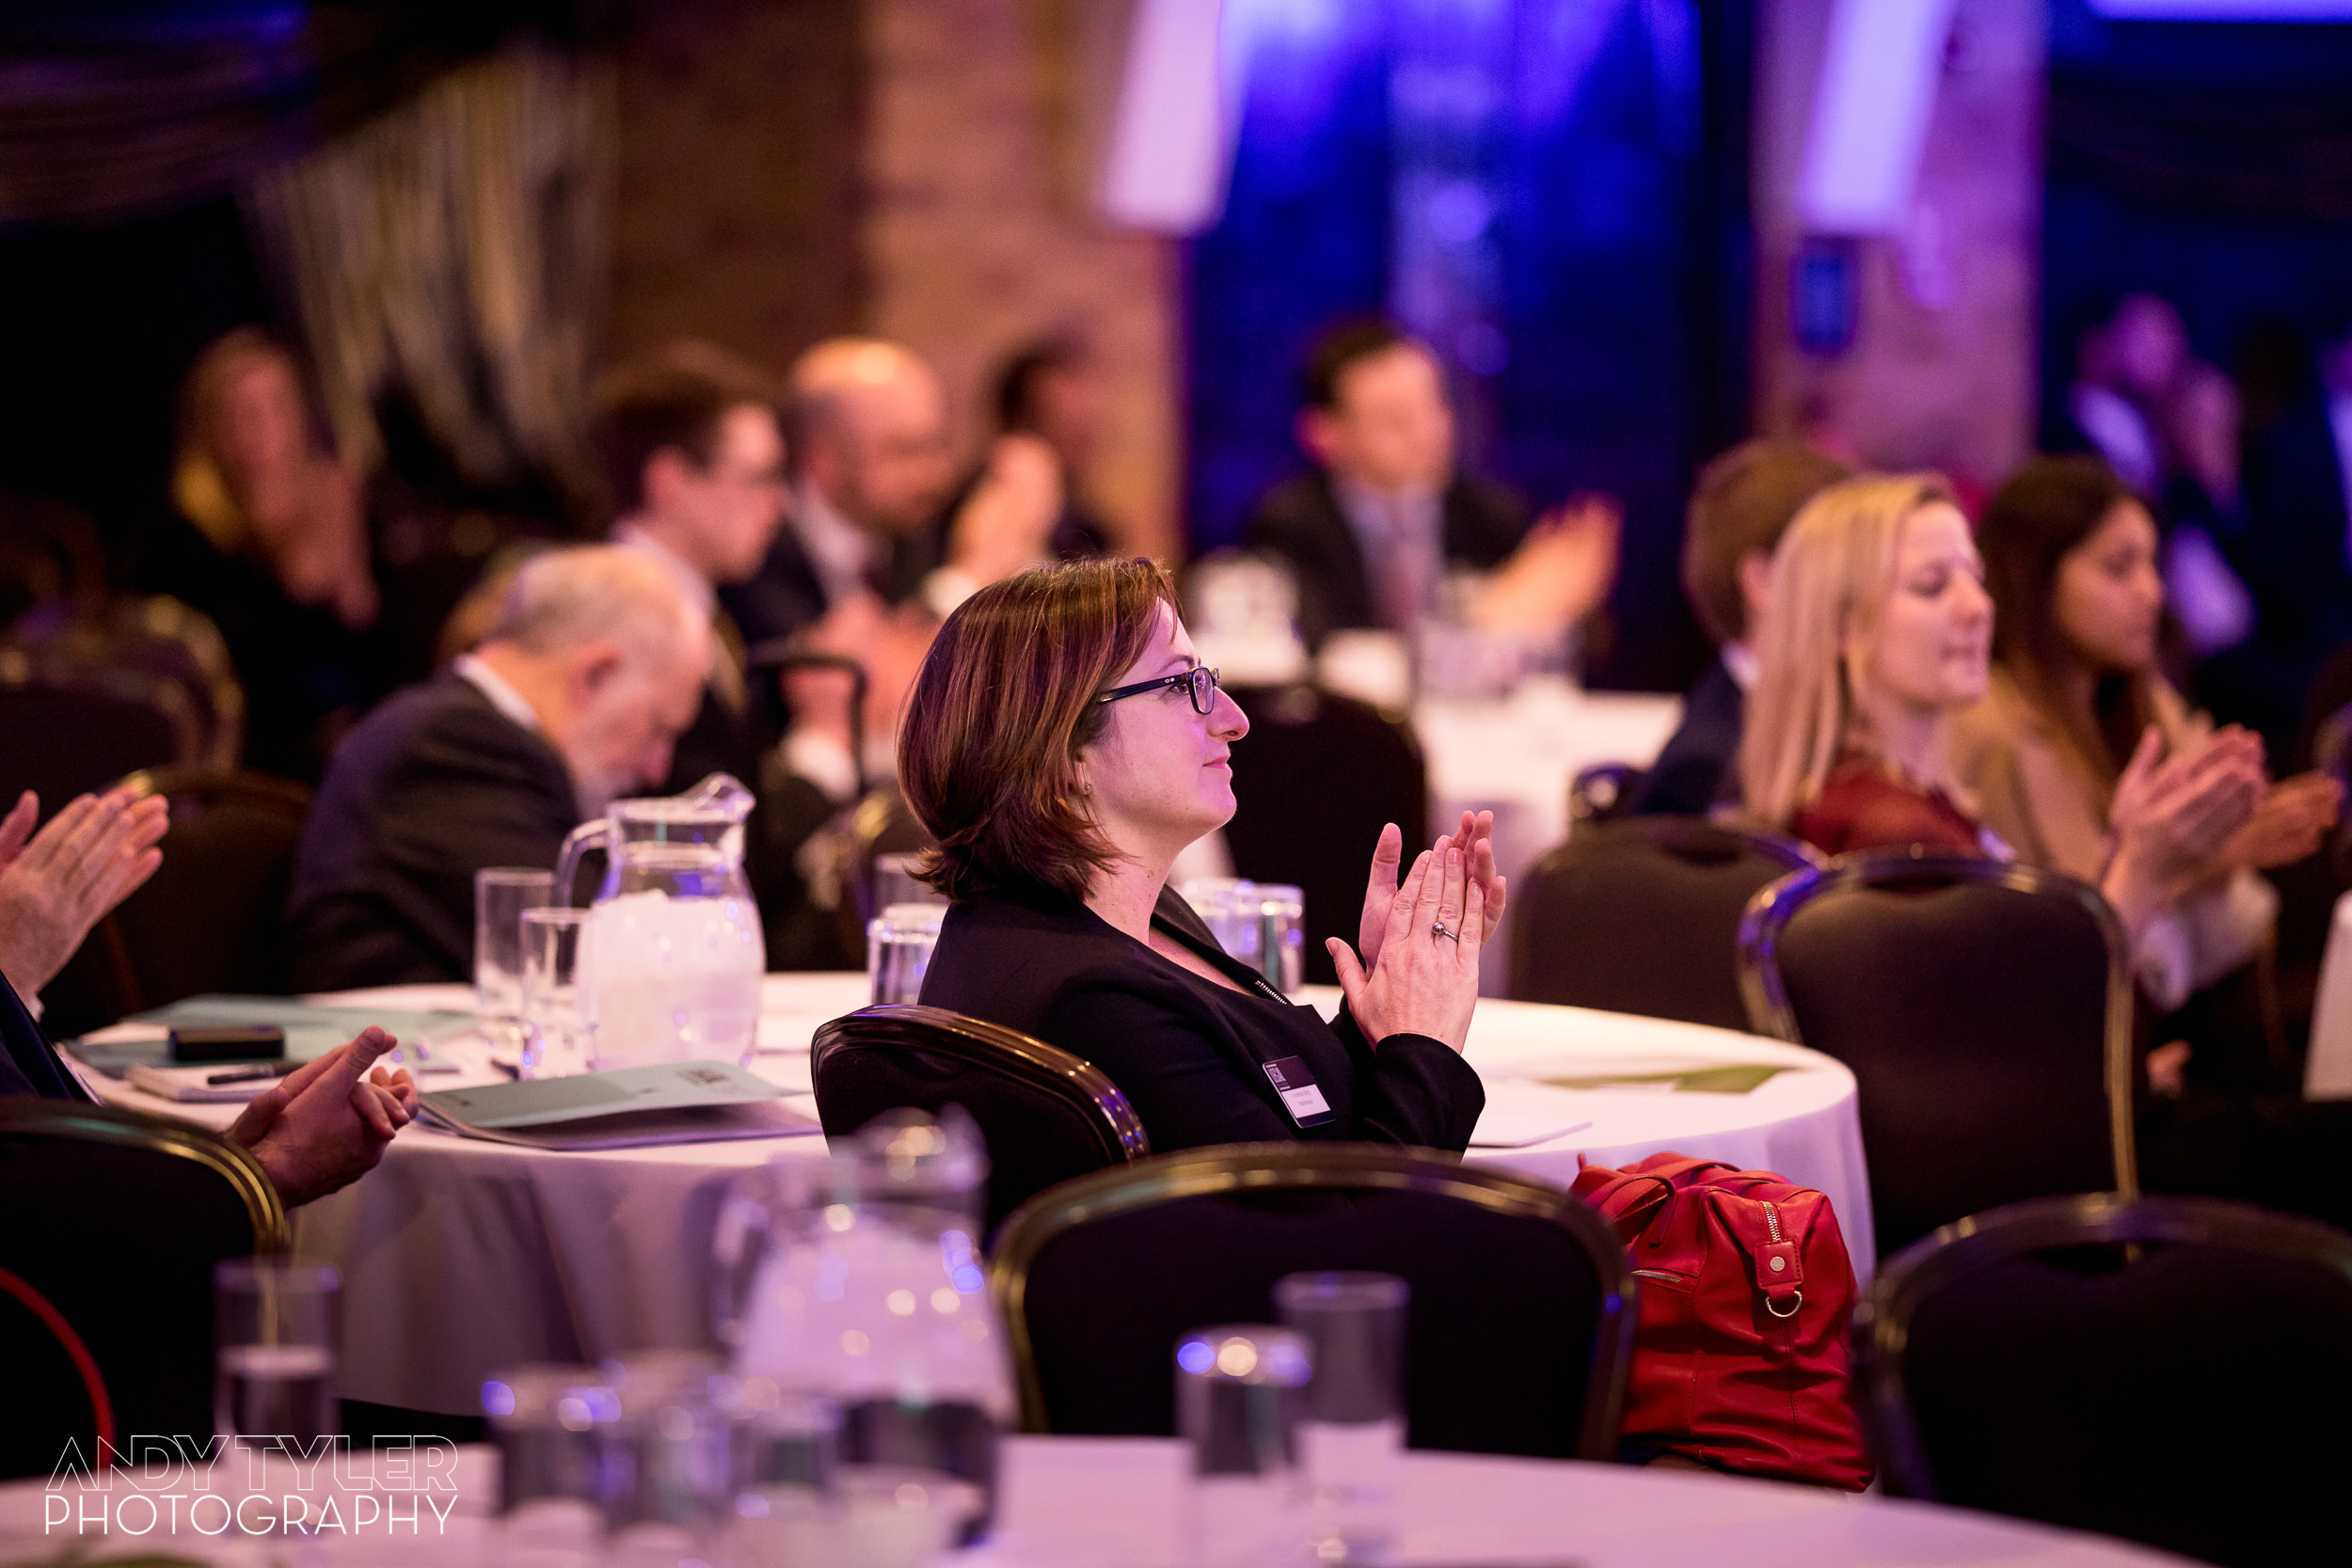 Andy_Tyler_Photography_Business_Conference_019_Andy_Tyler_Photography_362_5DA_1372.jpg